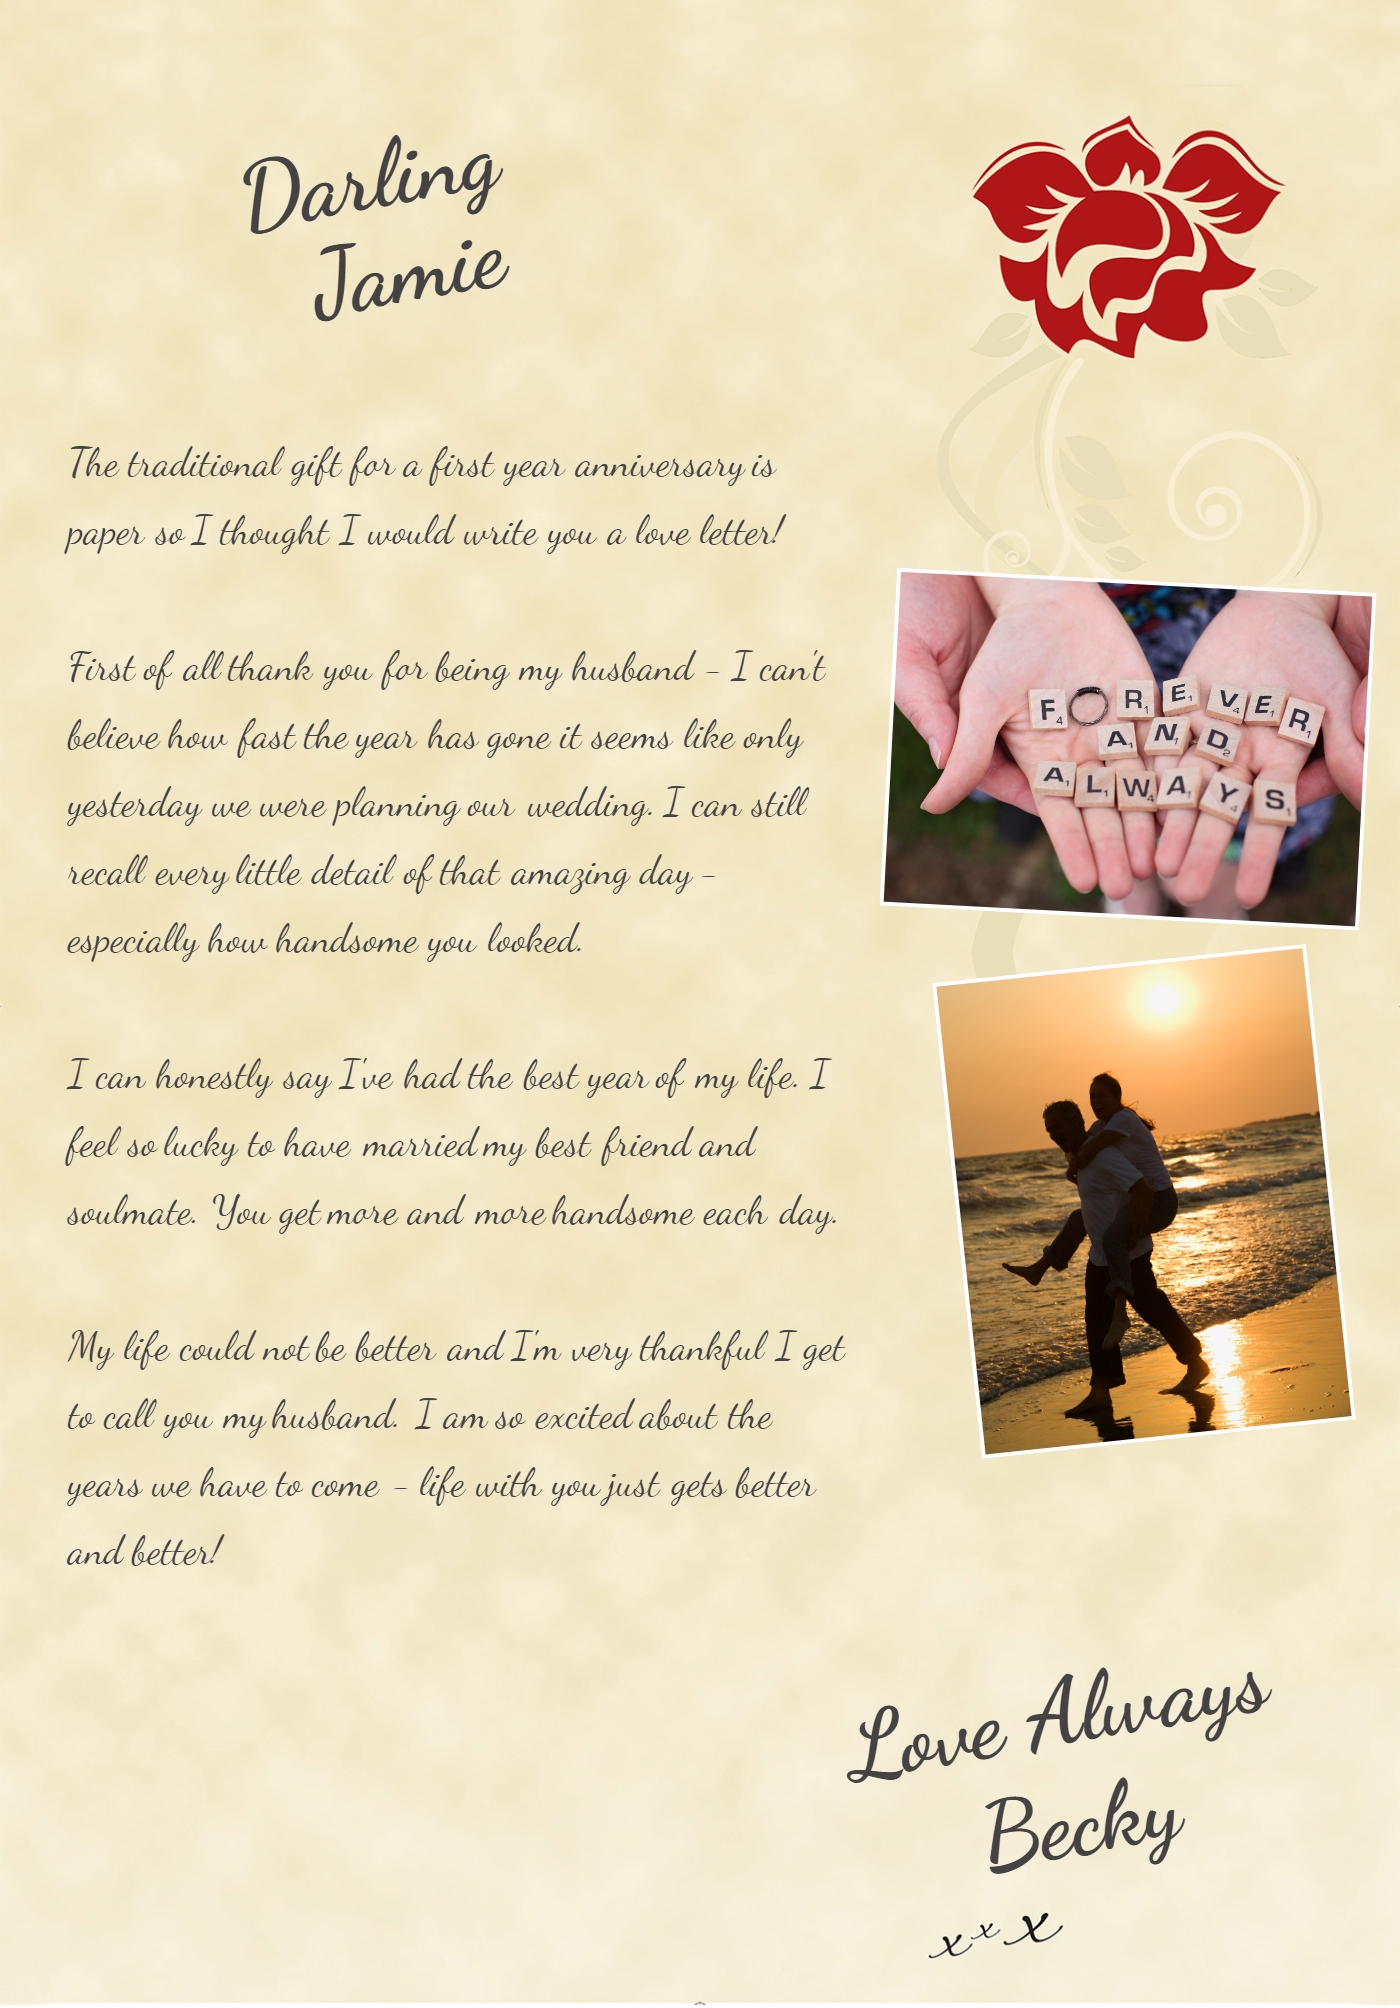 Wife To Husband First Anniversary Personalized Romantic Gifts Romantic Gifts For Him Romantic Gifts